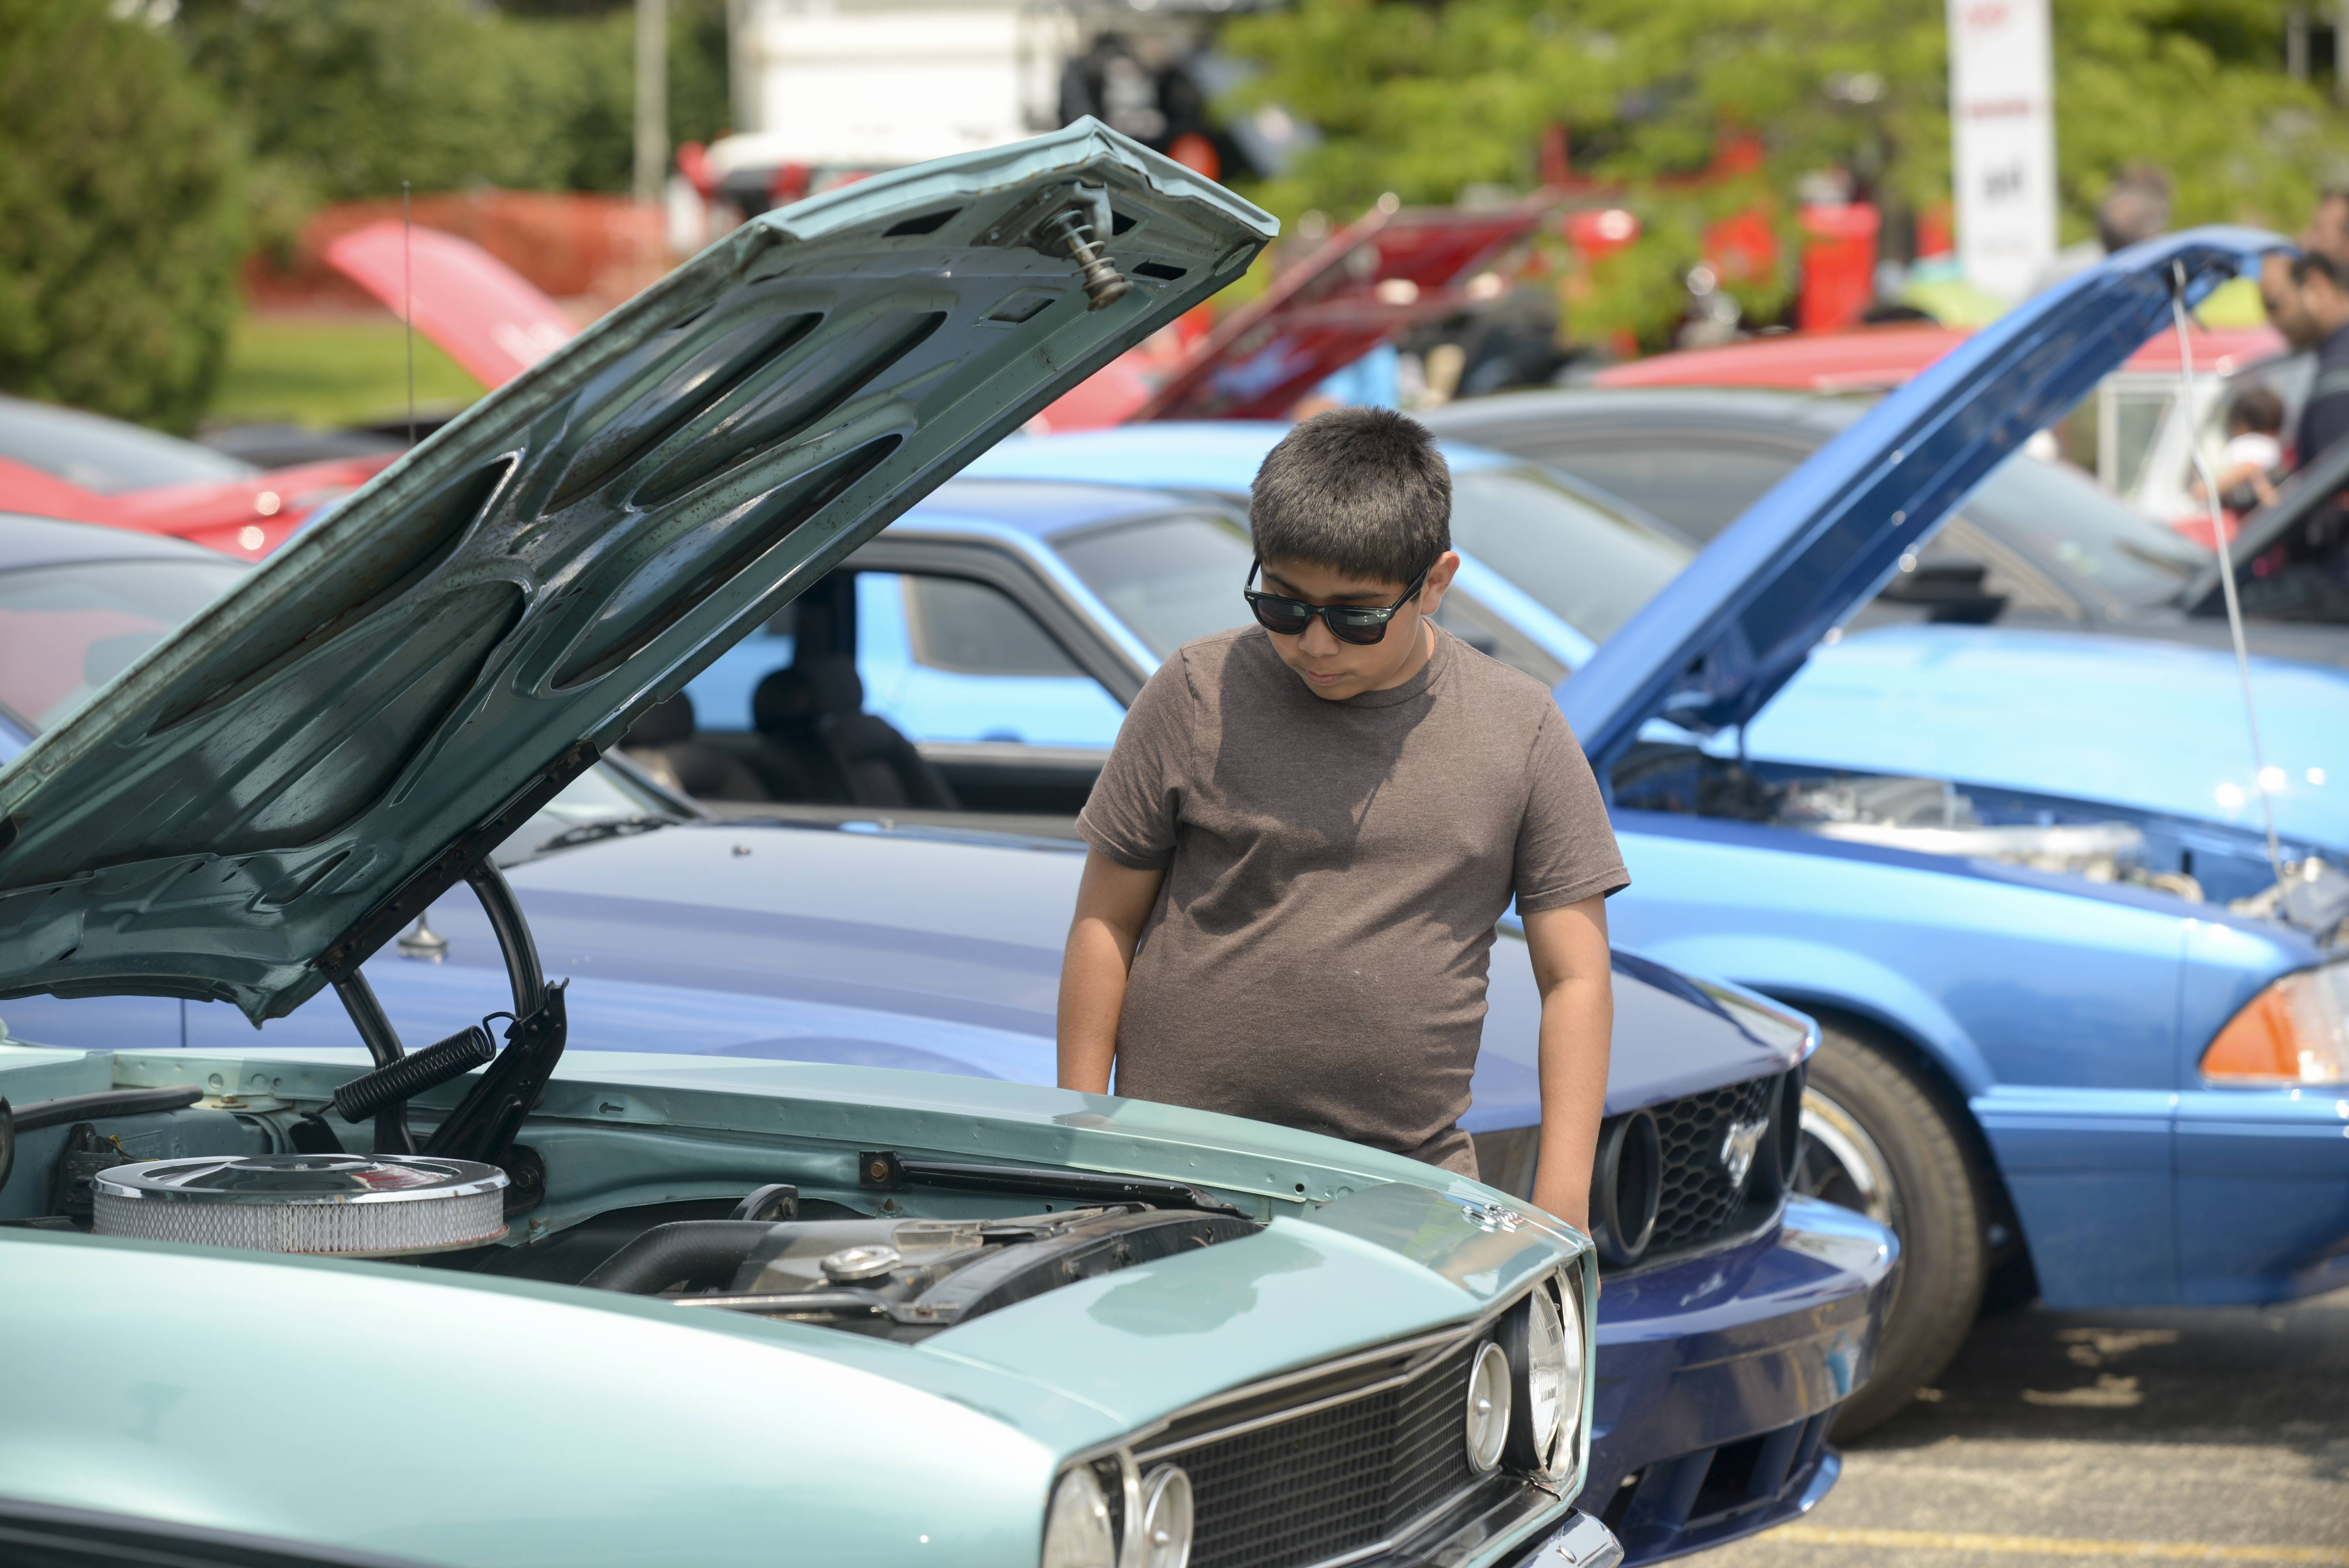 Steven Paredes, 11, of Mundelein checks out the engine of the a 1967 Camaro at the car show Saturday during the Vernon Hills Summer Celebration.